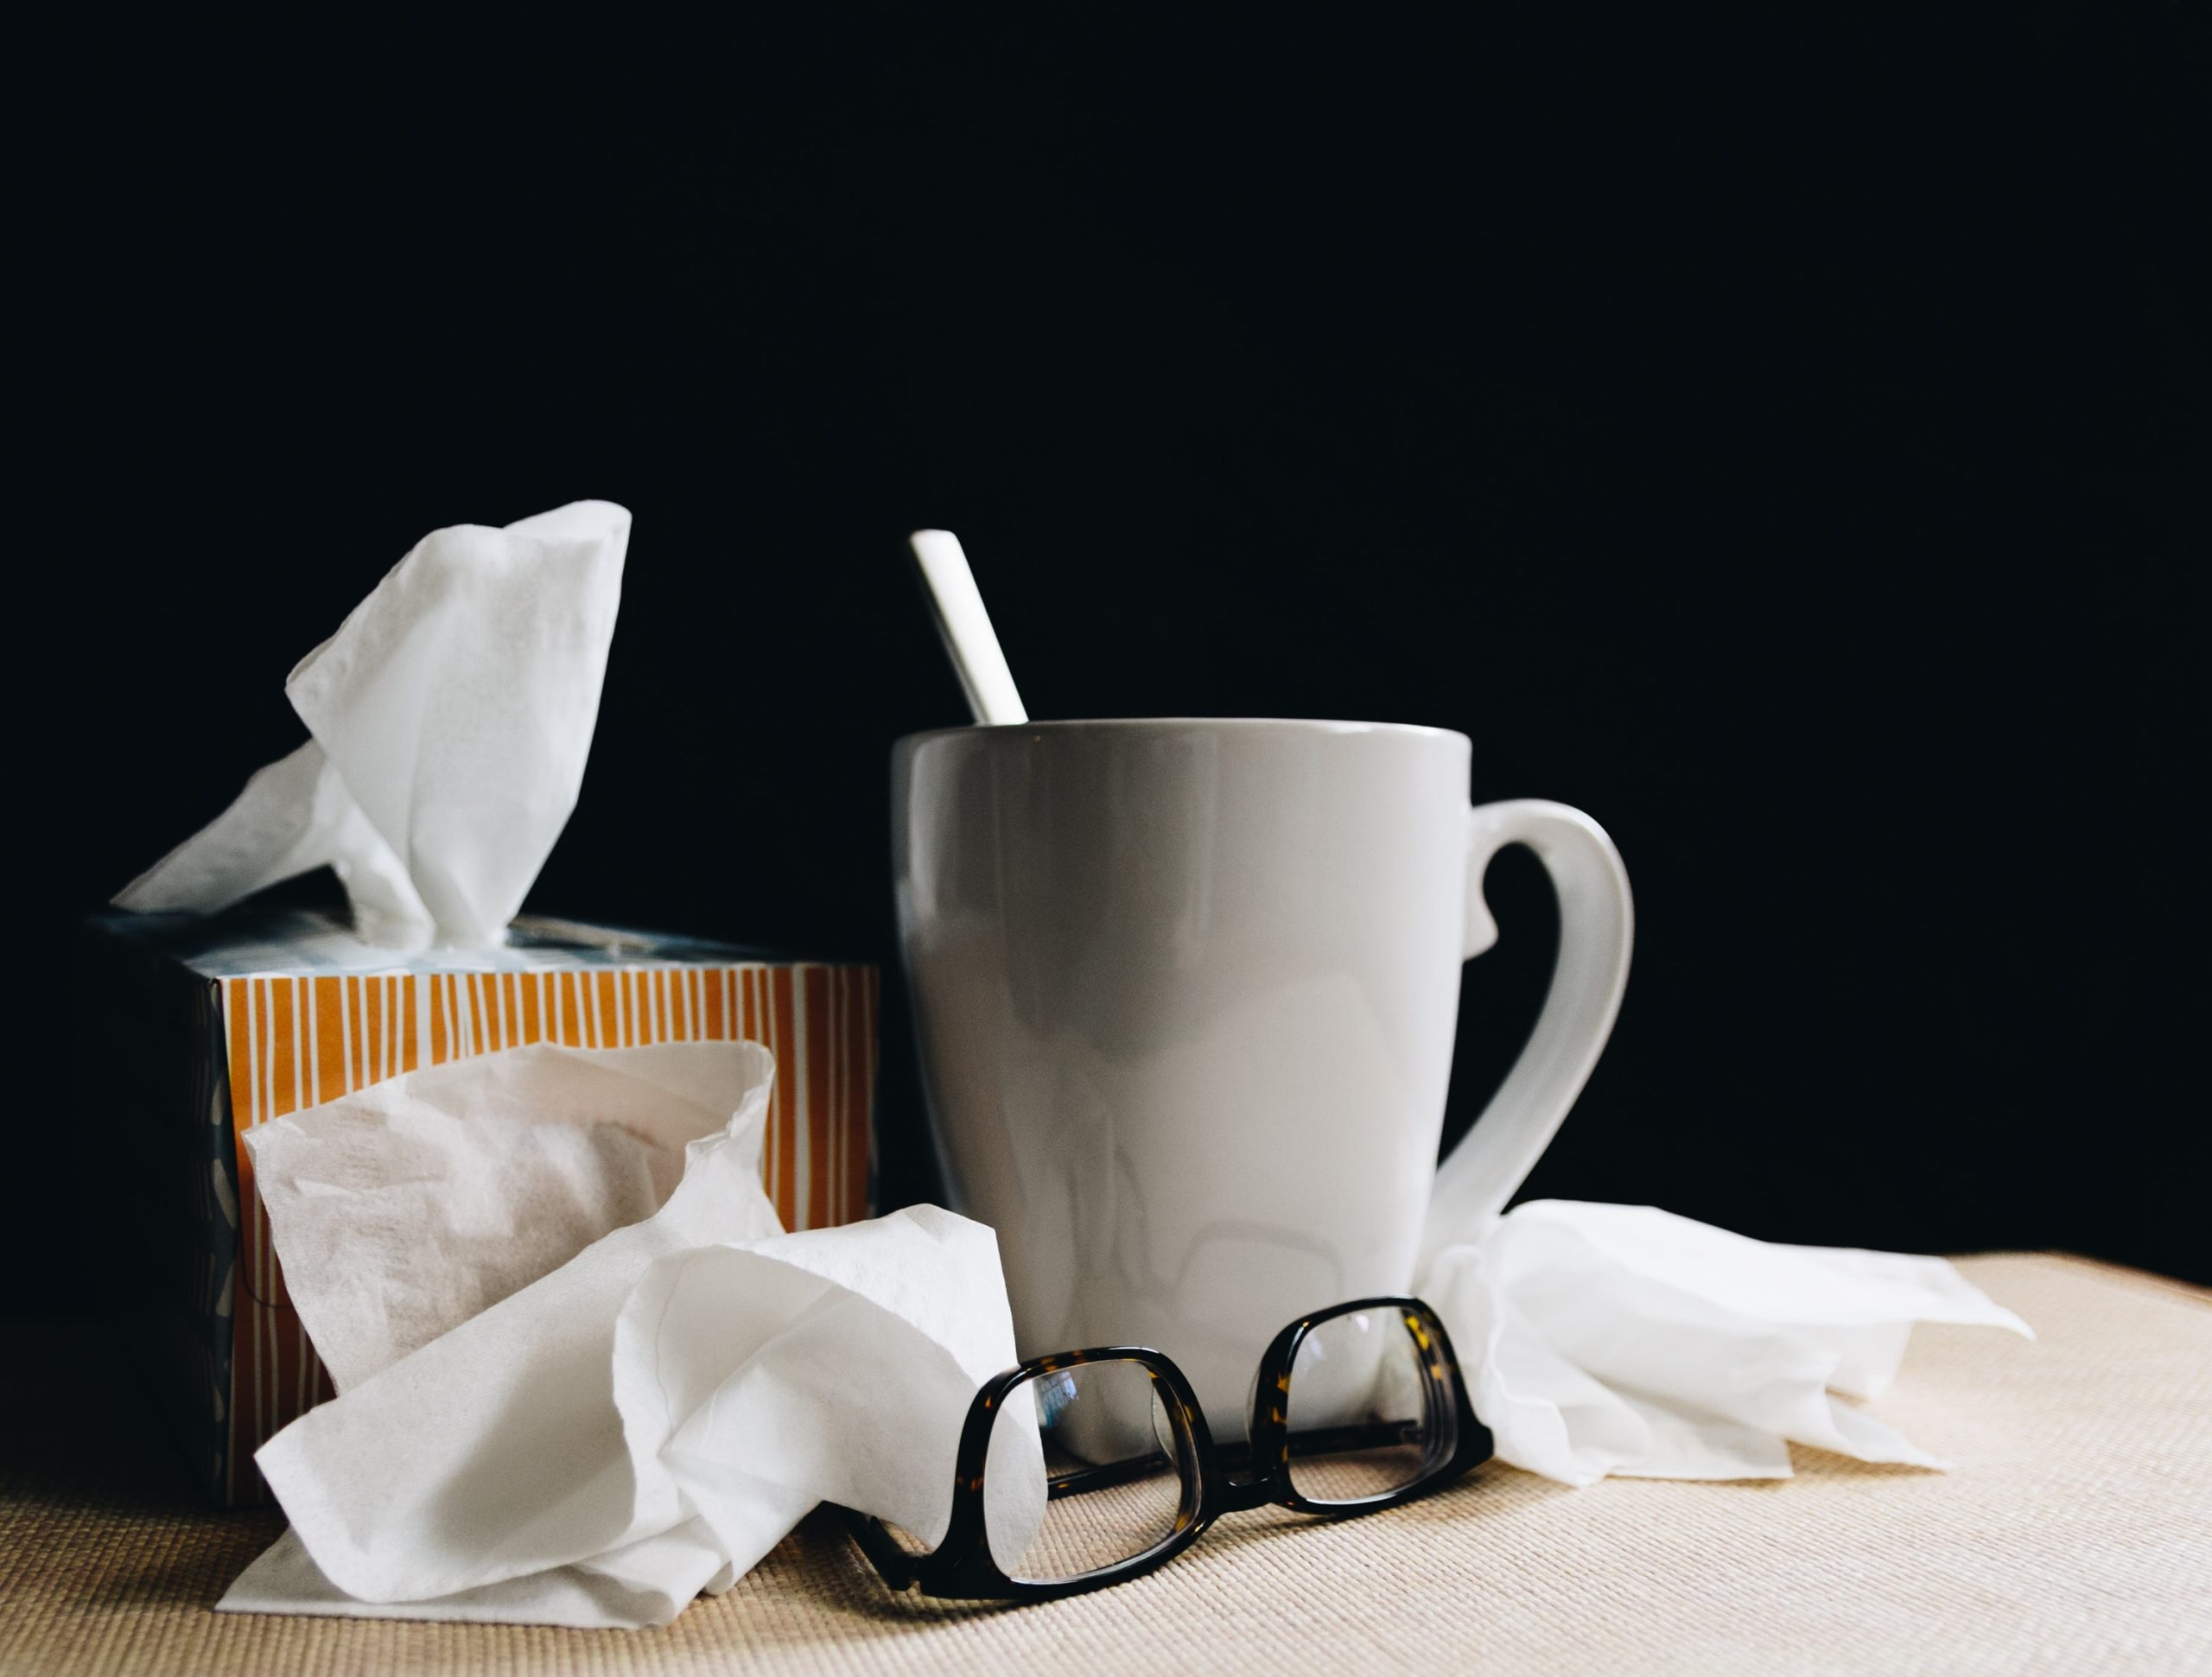 A mug and glasses next to a box of tissues surrounded by used tissues